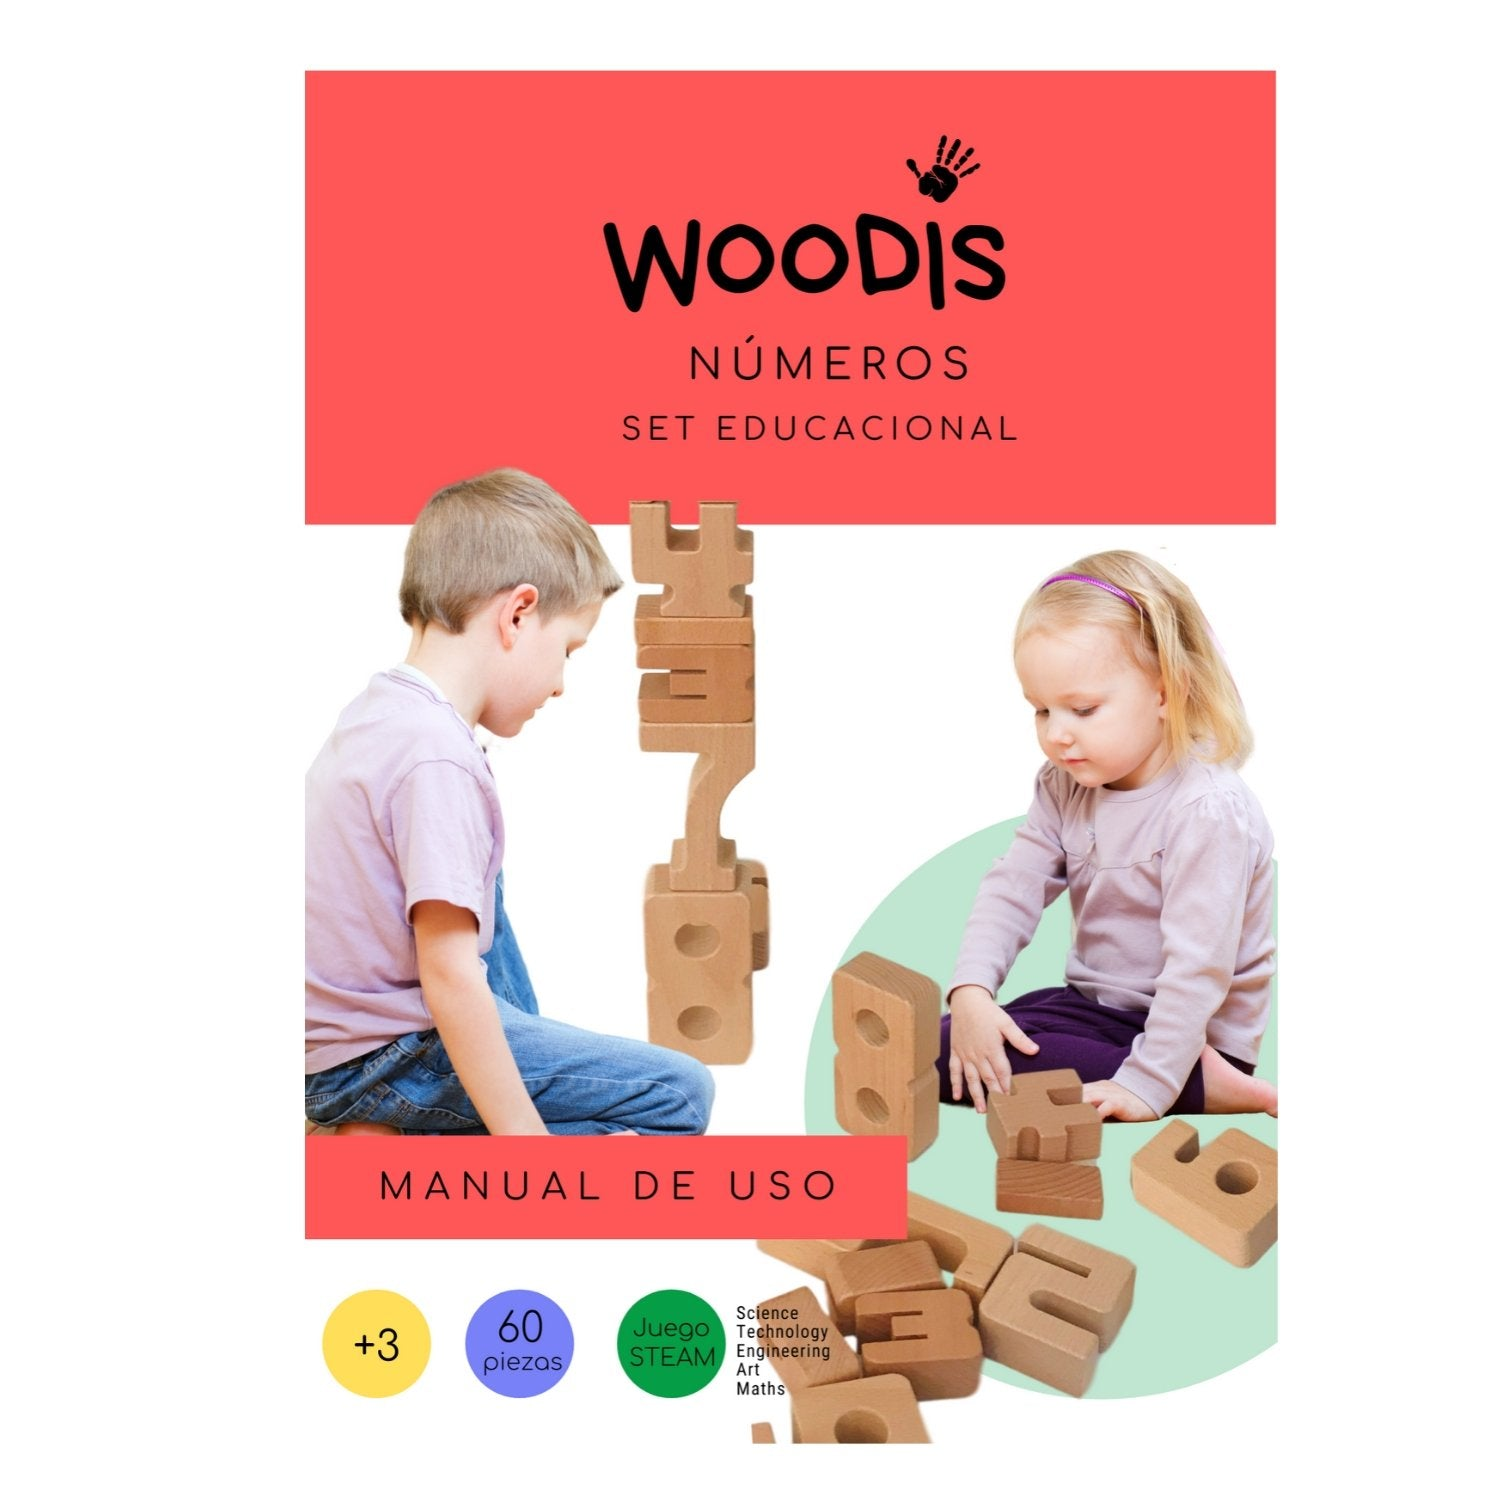 Woodis Números, Manual de Uso